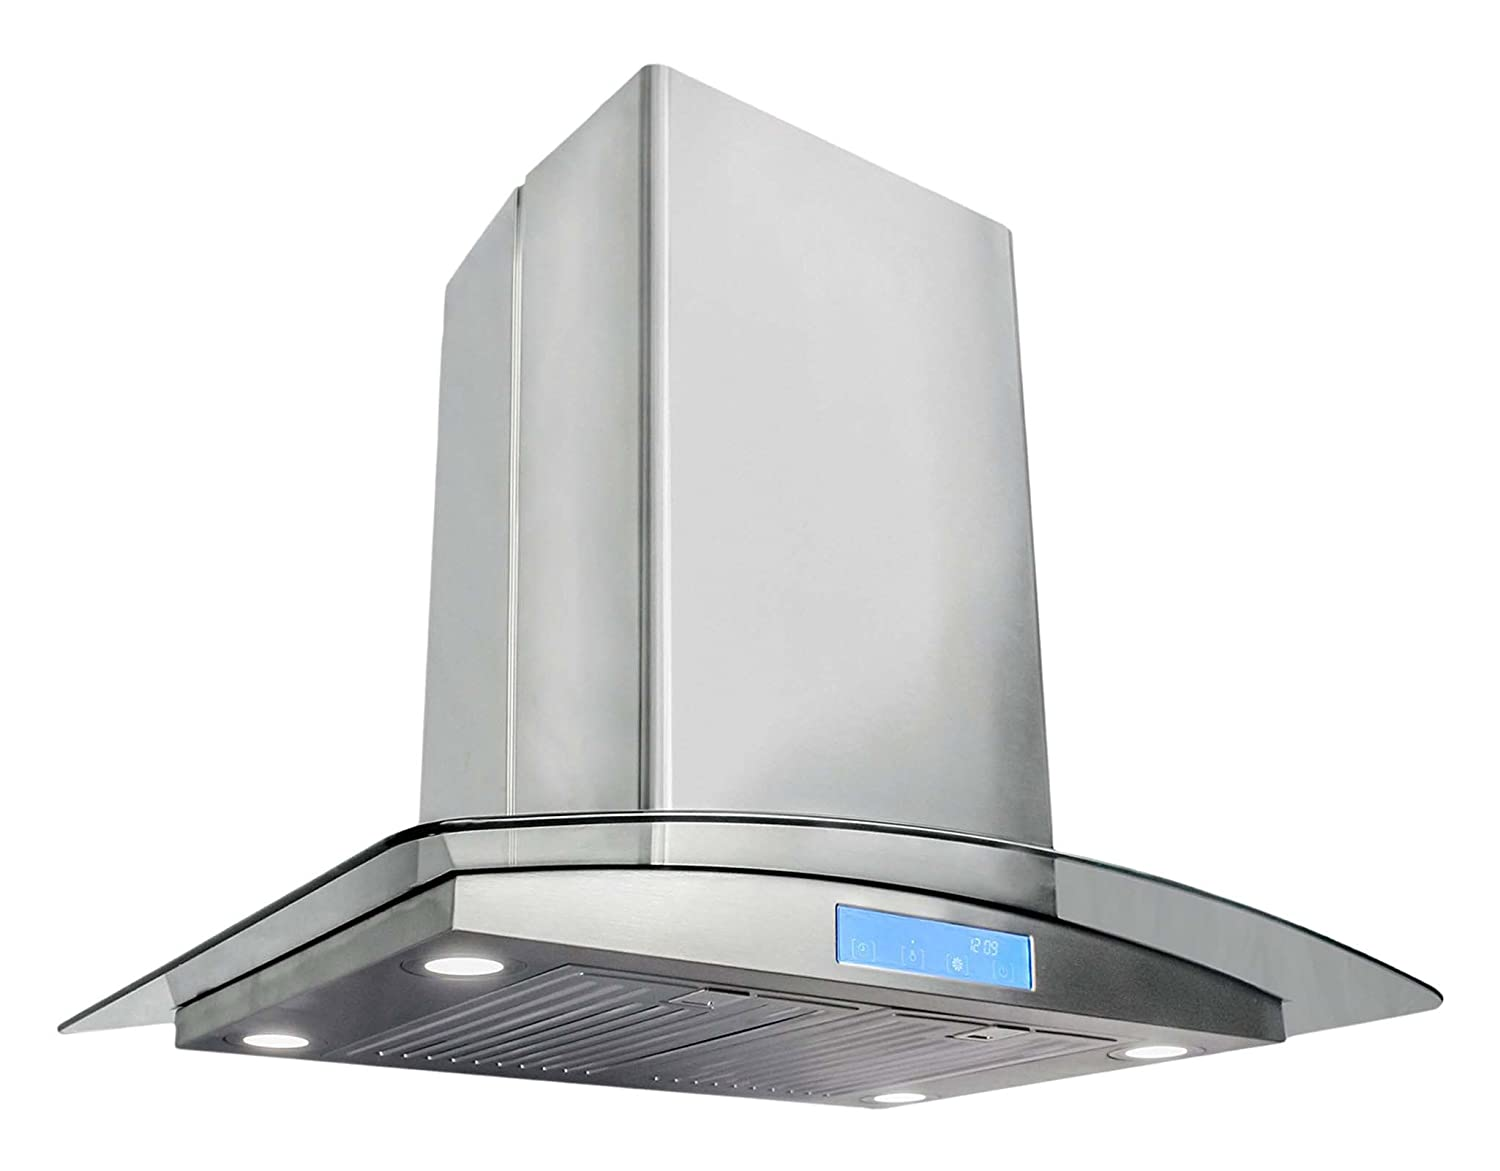 Cosmo 668ICS750 30 in. Island Mount Range Hood with Tempered Glass Visor, Soft Touch Controls, LED Lighting and Permanent Filters